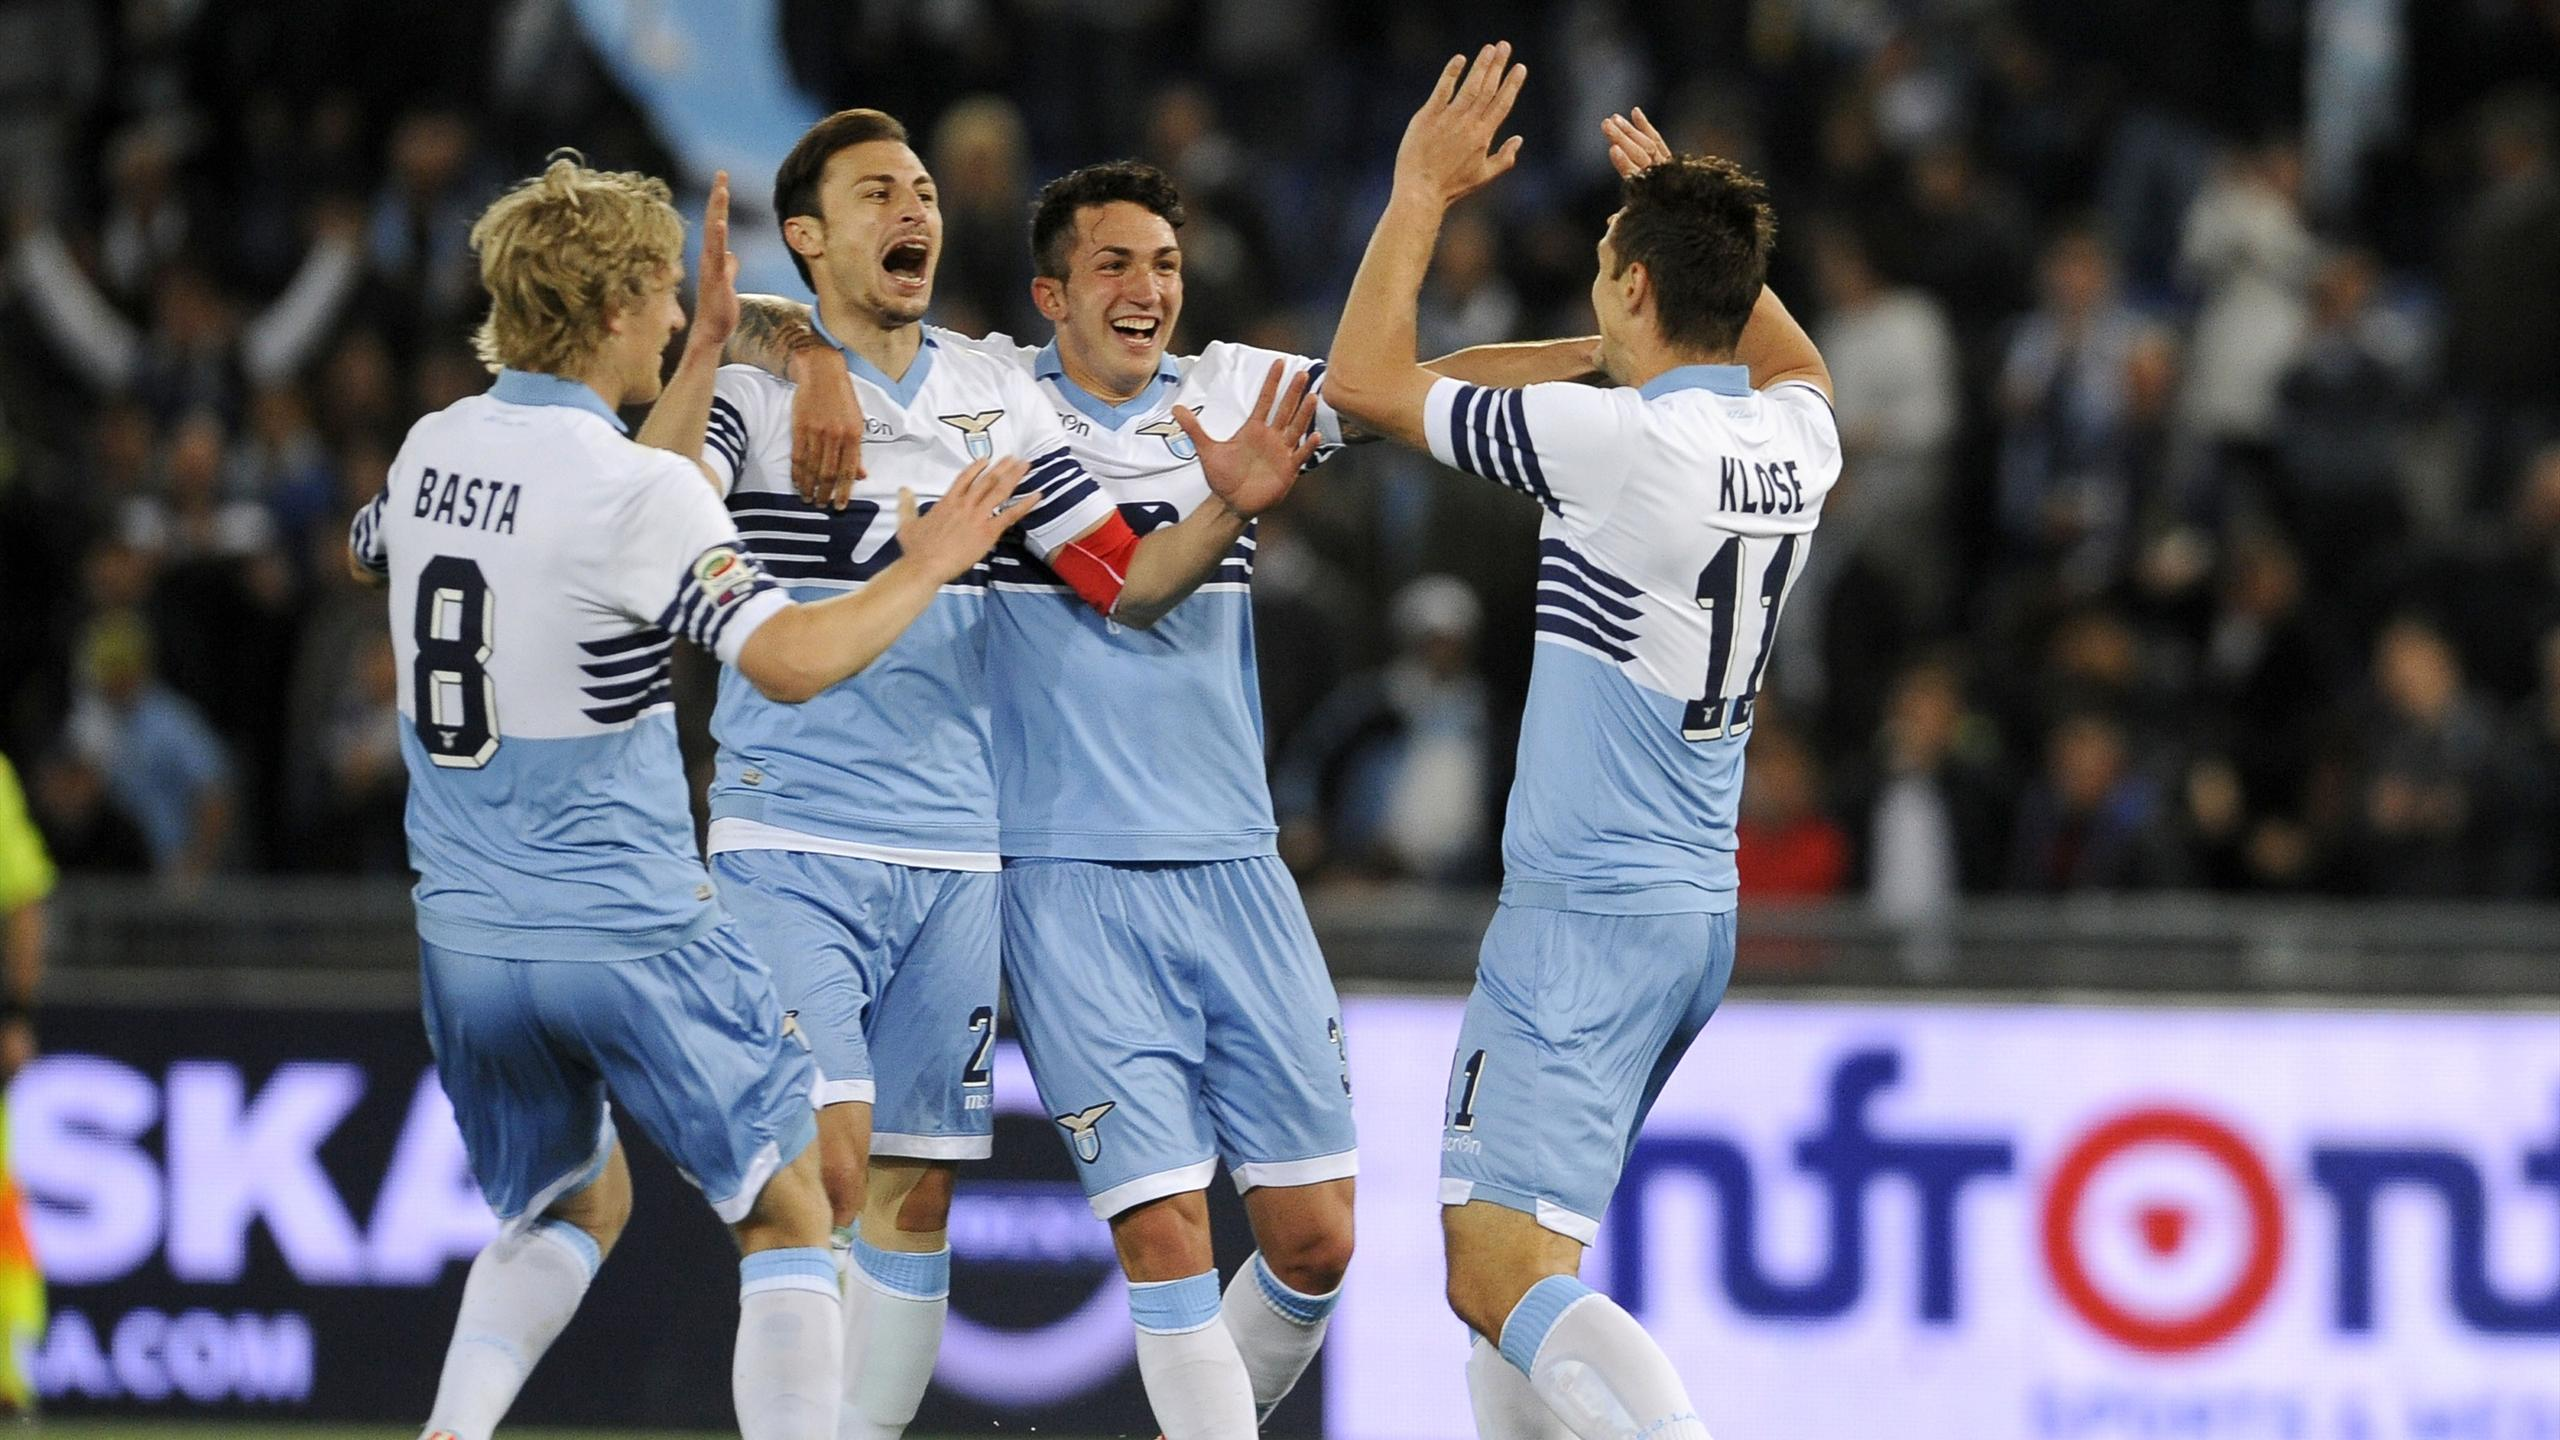 Video: Lazio vs Parma